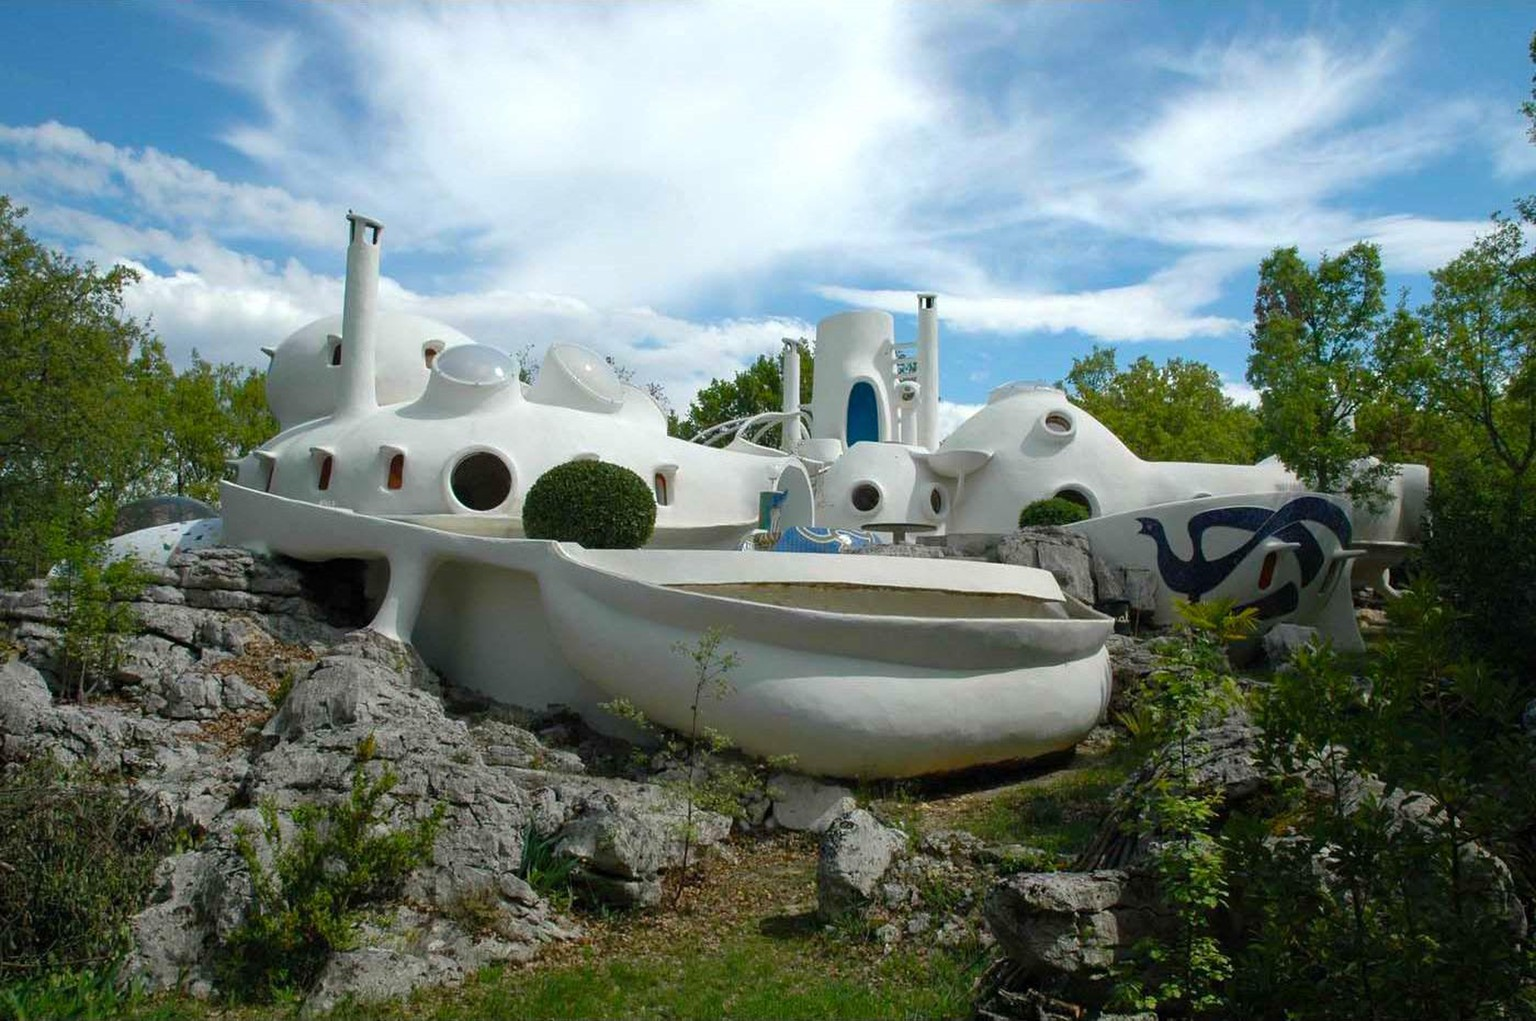 maison bulle unal uzes ardeche frankreich design architektur retro barbapapa https://www.architecturedecollection.fr/product/maison-bulle-unal-hausermann/